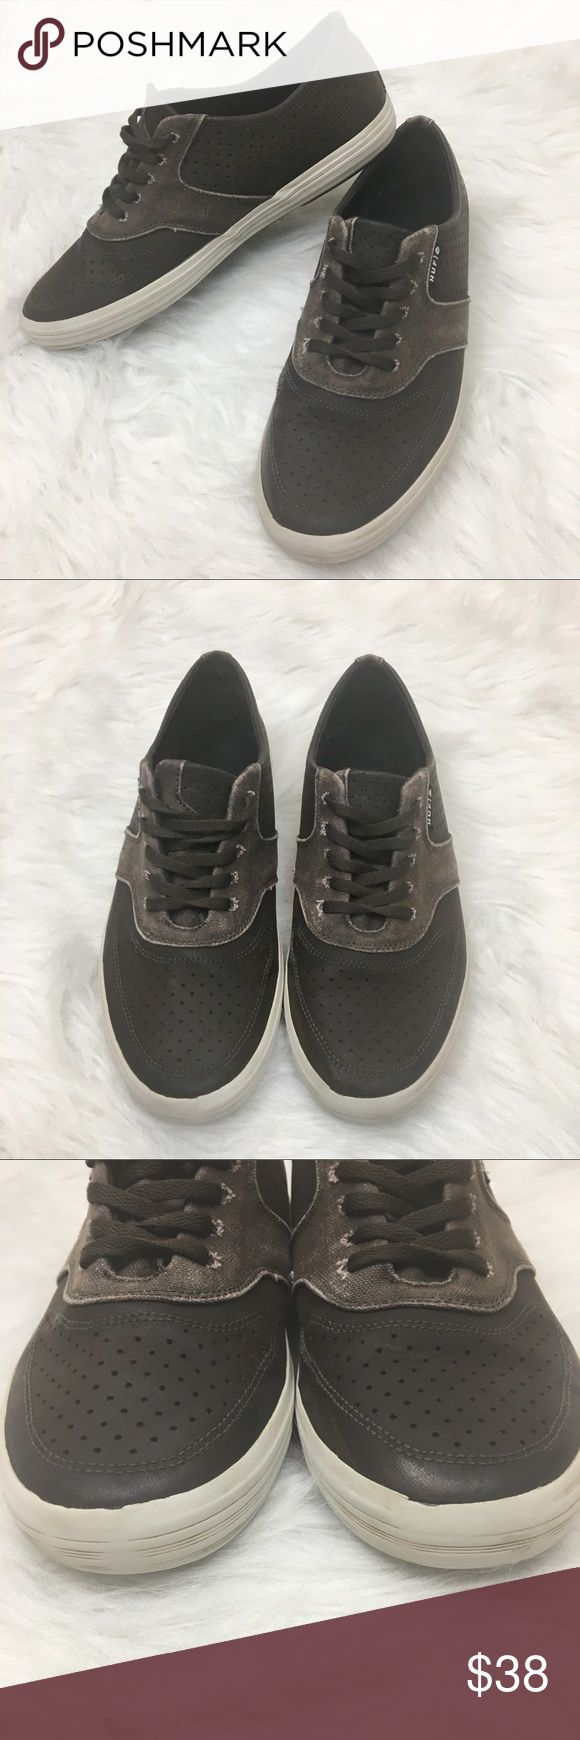 HUF | Classic Lo Skater Sneakers Leather Canvas HUF Classic Lo Skater Lace up Sneakers. Dark brown perforated leather throughout with lighter brown lightly distressed canvas detailing. In very good condition overall with some very minor signs of wear.   Size 8.5 men's HUF Shoes Sneakers